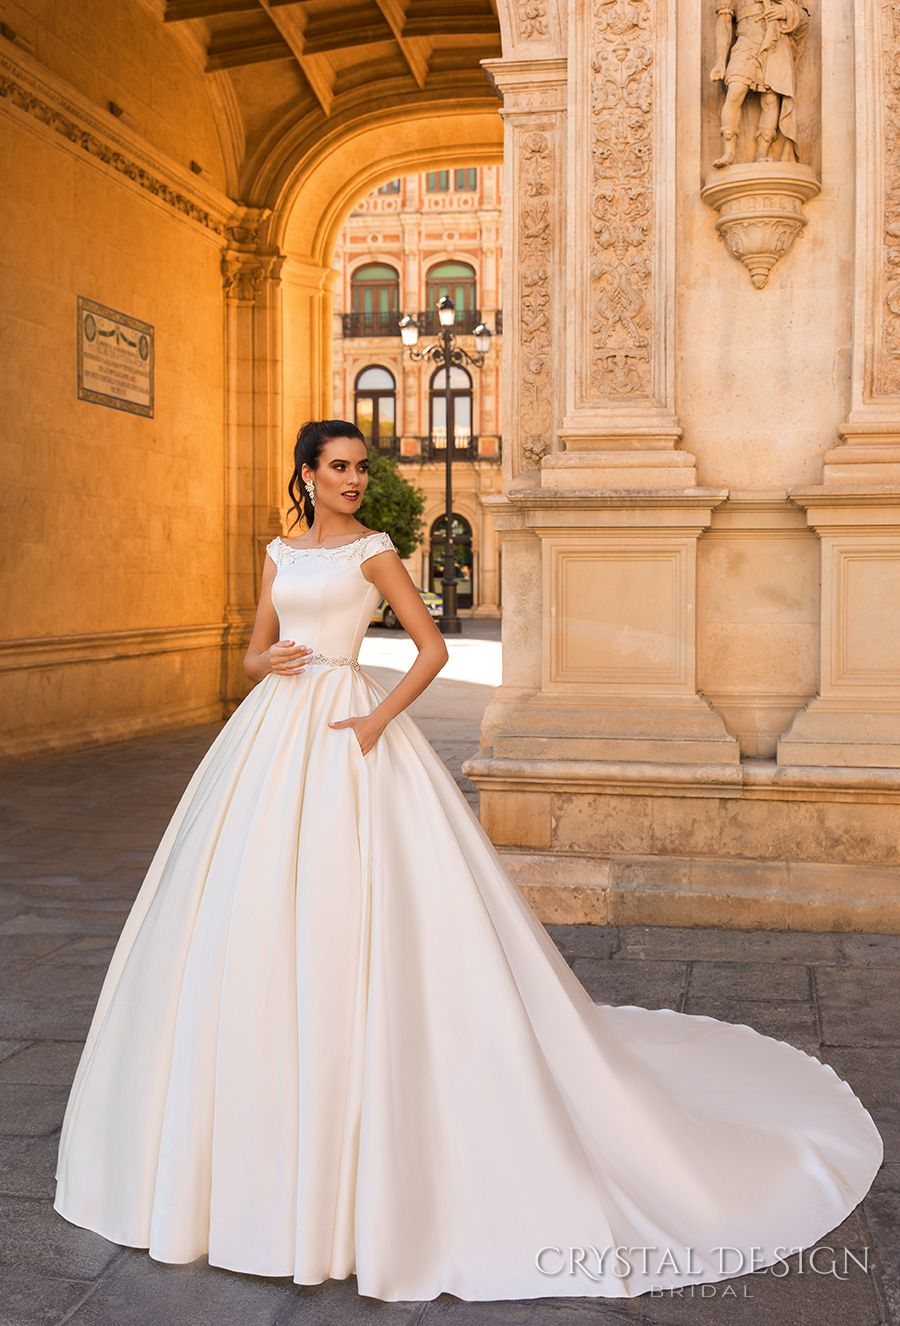 Beautiful Wedding Dresses From The 2017 Crystal Design Collection Sevilla Bridal Campaign Wedding Inspirasi Ball Gowns Wedding Wedding Dress With Pockets Wedding Dresses Simple [ 1326 x 900 Pixel ]